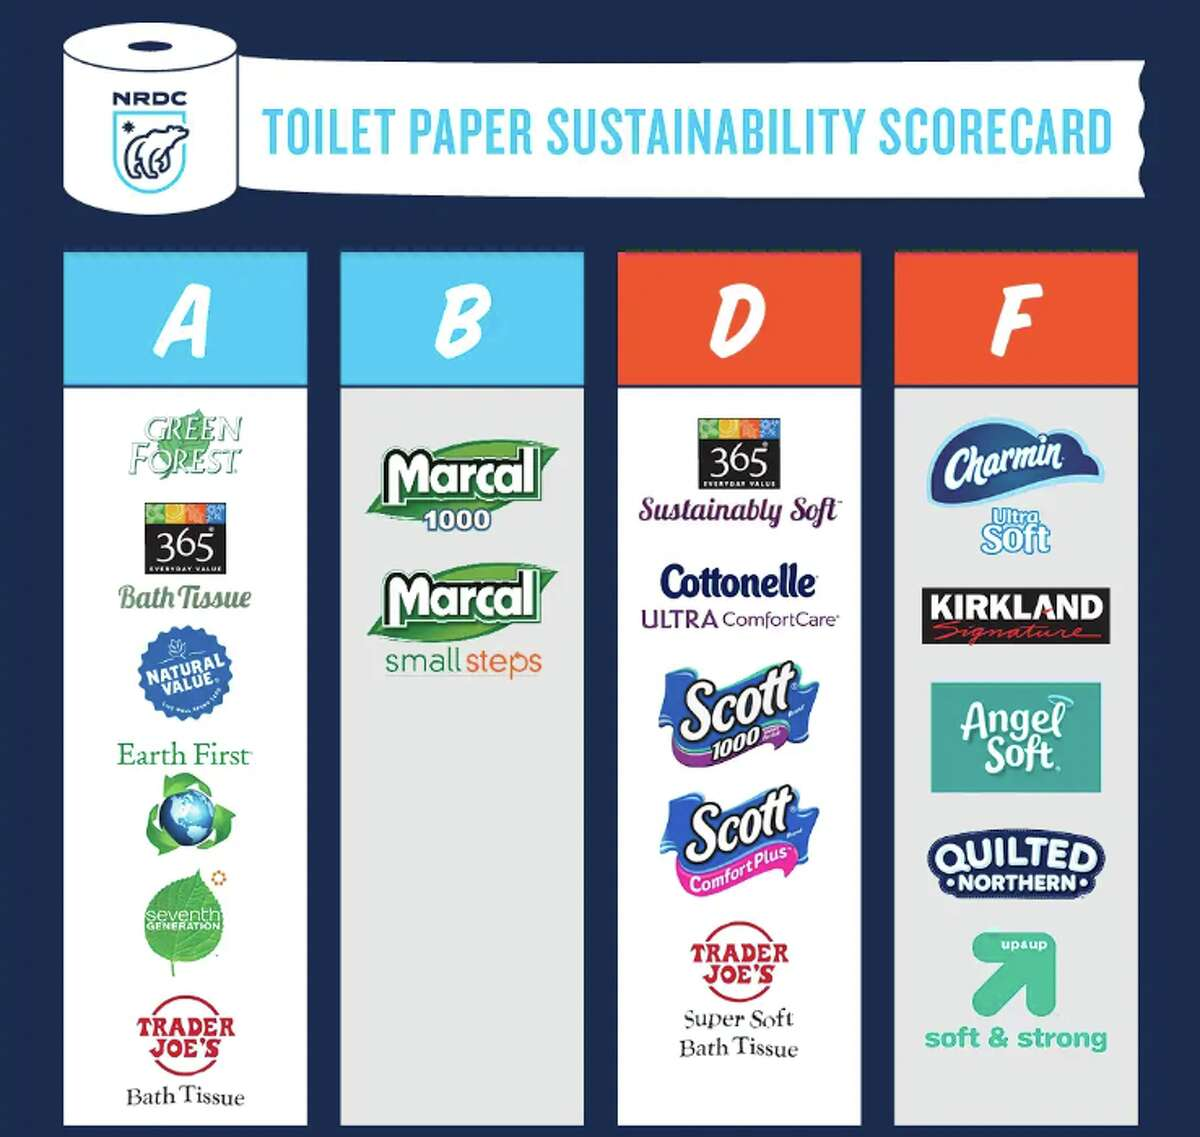 A recent report by the Natural Resources Defense Council (NRDC) and Stand.earth graded toilet paper in sustainability. Some of the most popular brands received F's.